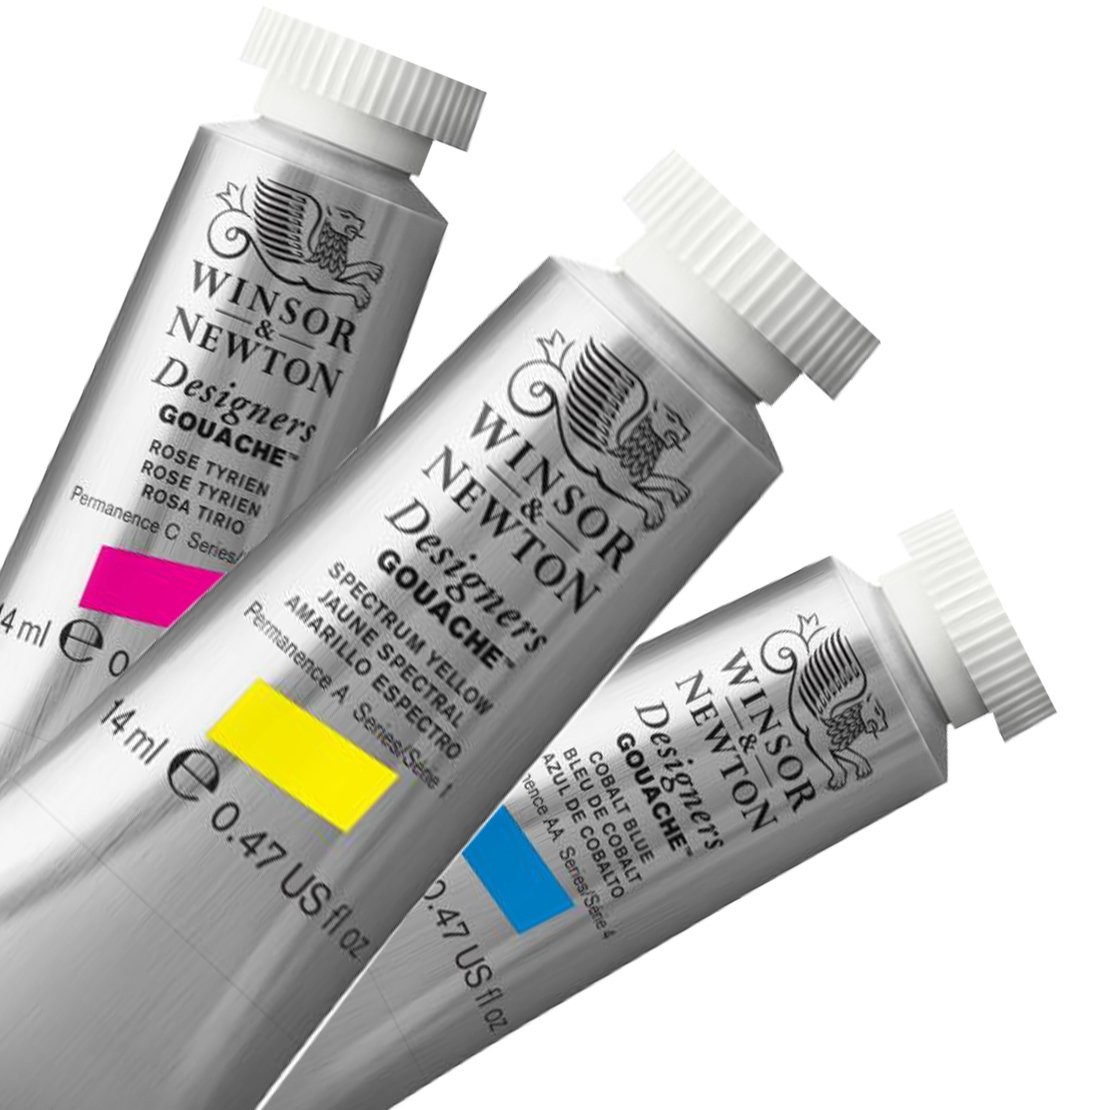 Winsor and Newton Gouache Paint Tubes